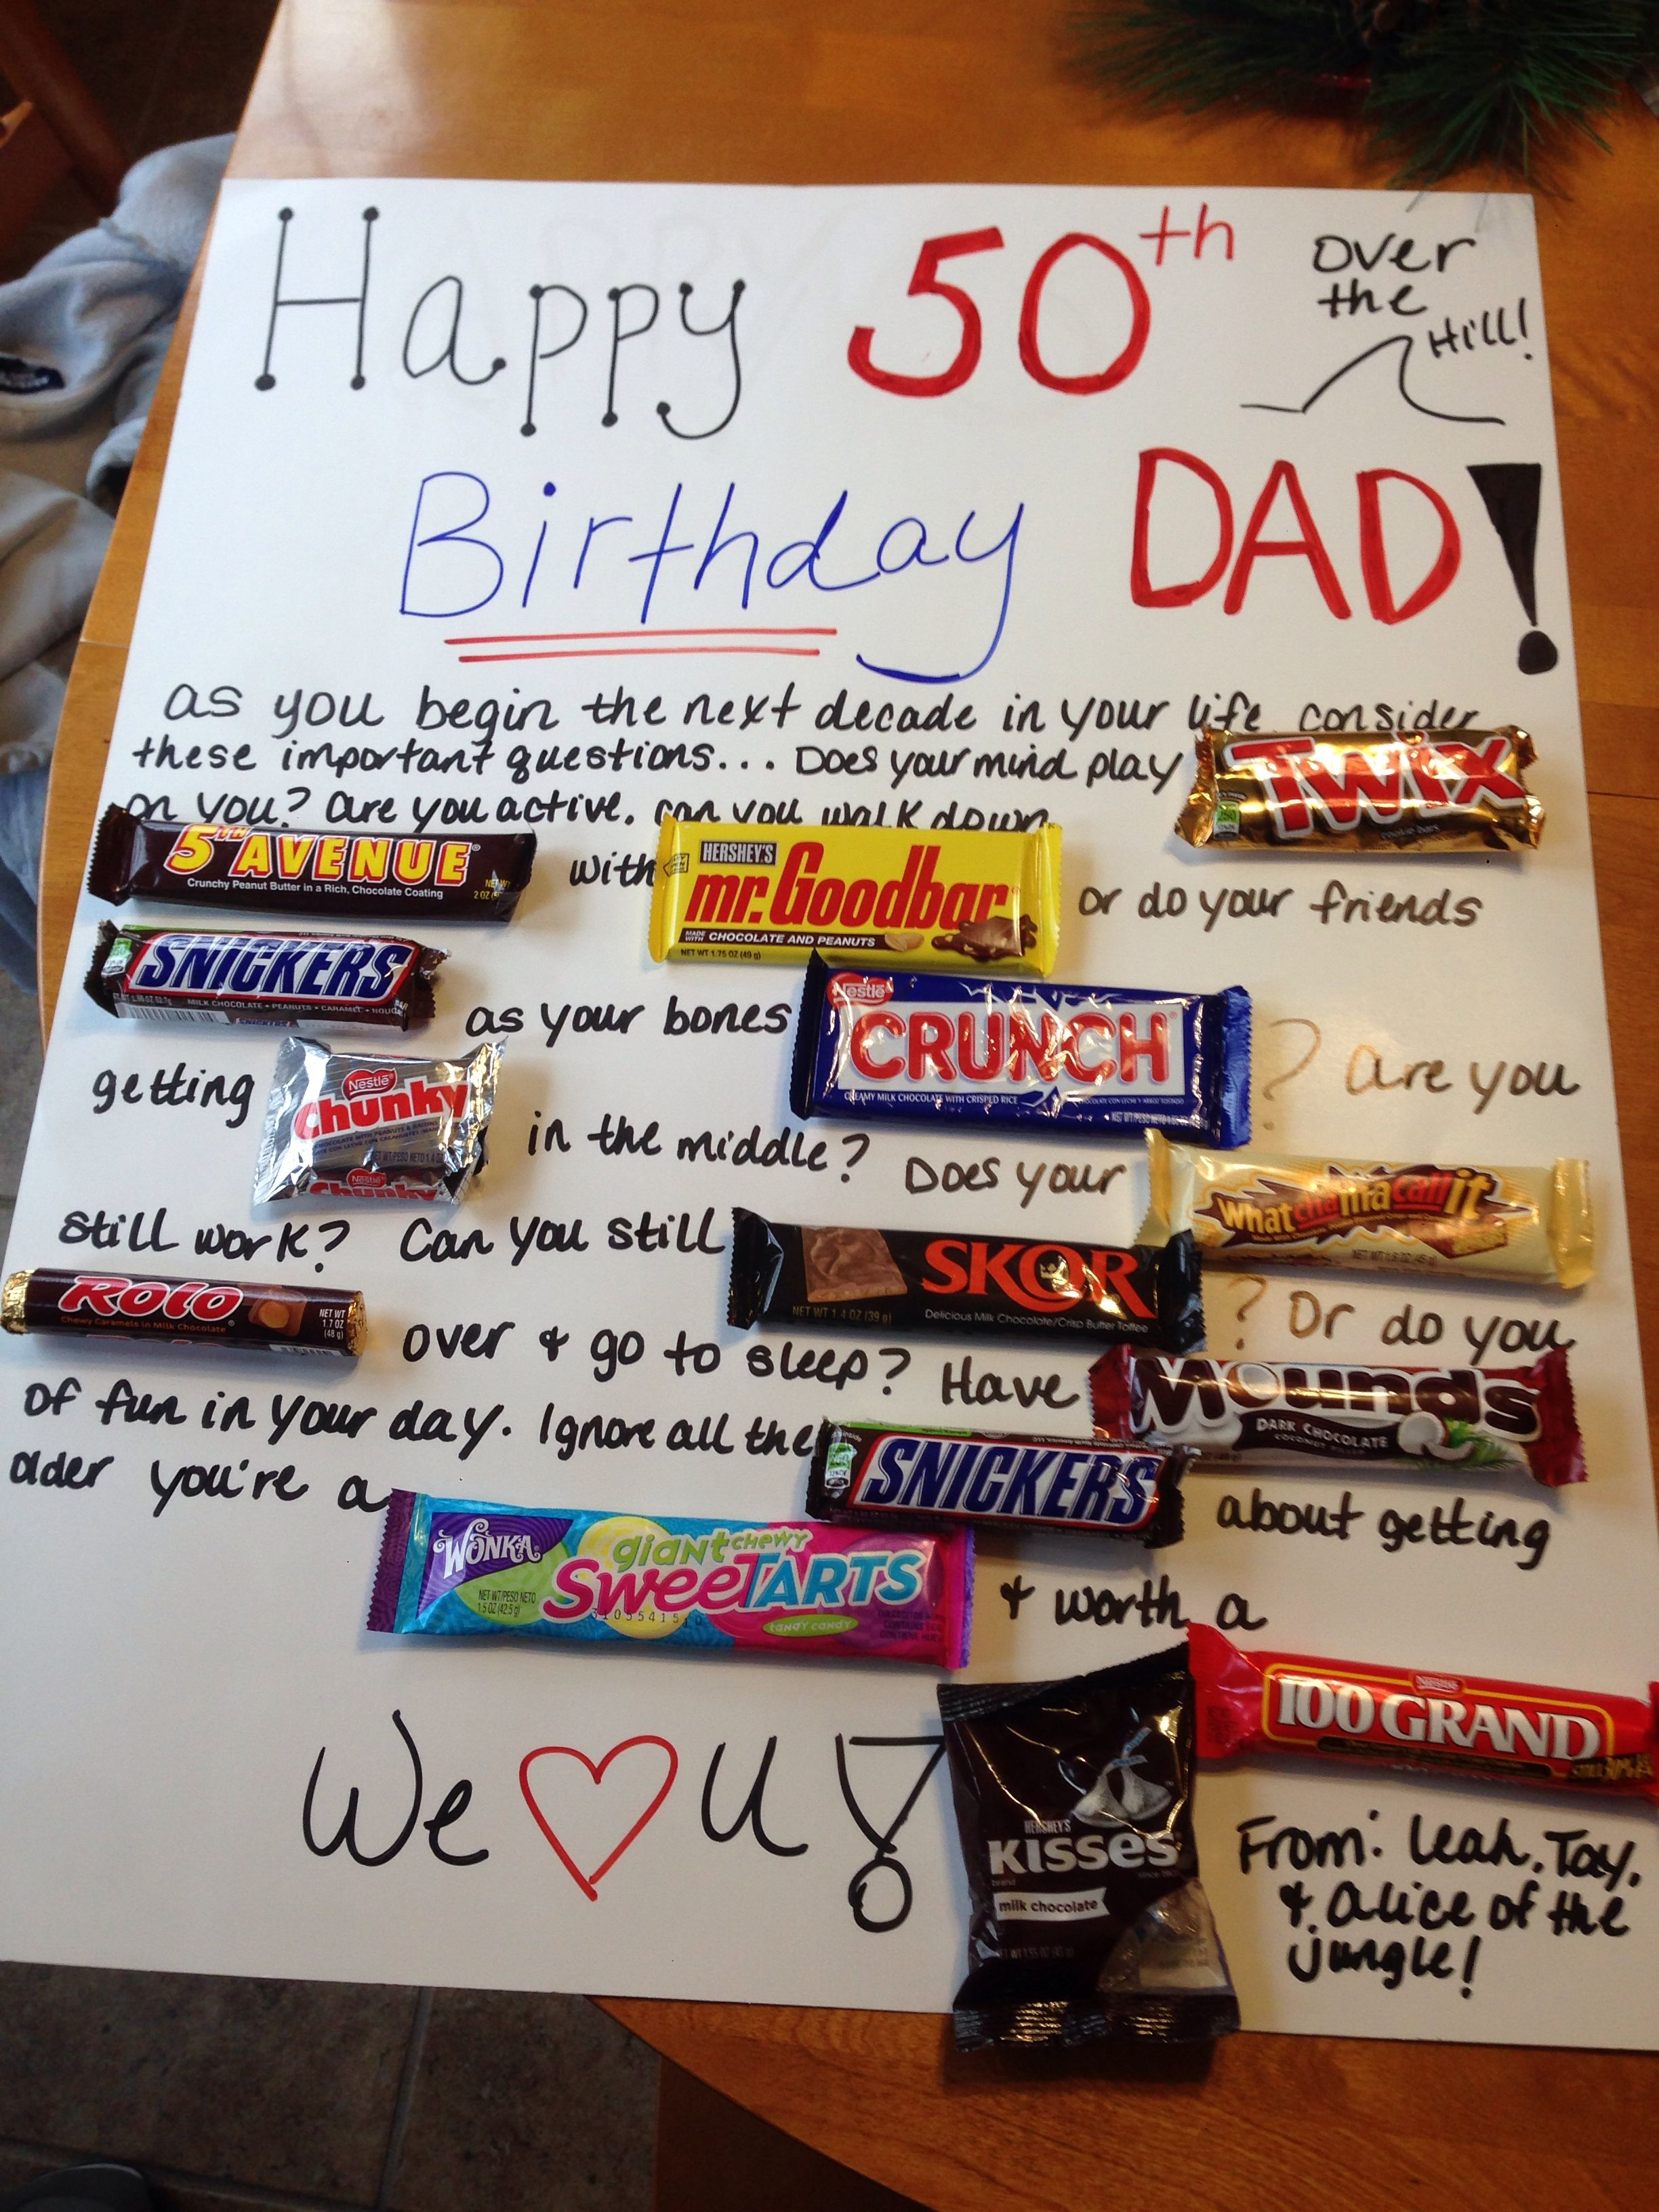 40th Birthday Ideas: 50th Birthday Gift Ideas For Uncle ...